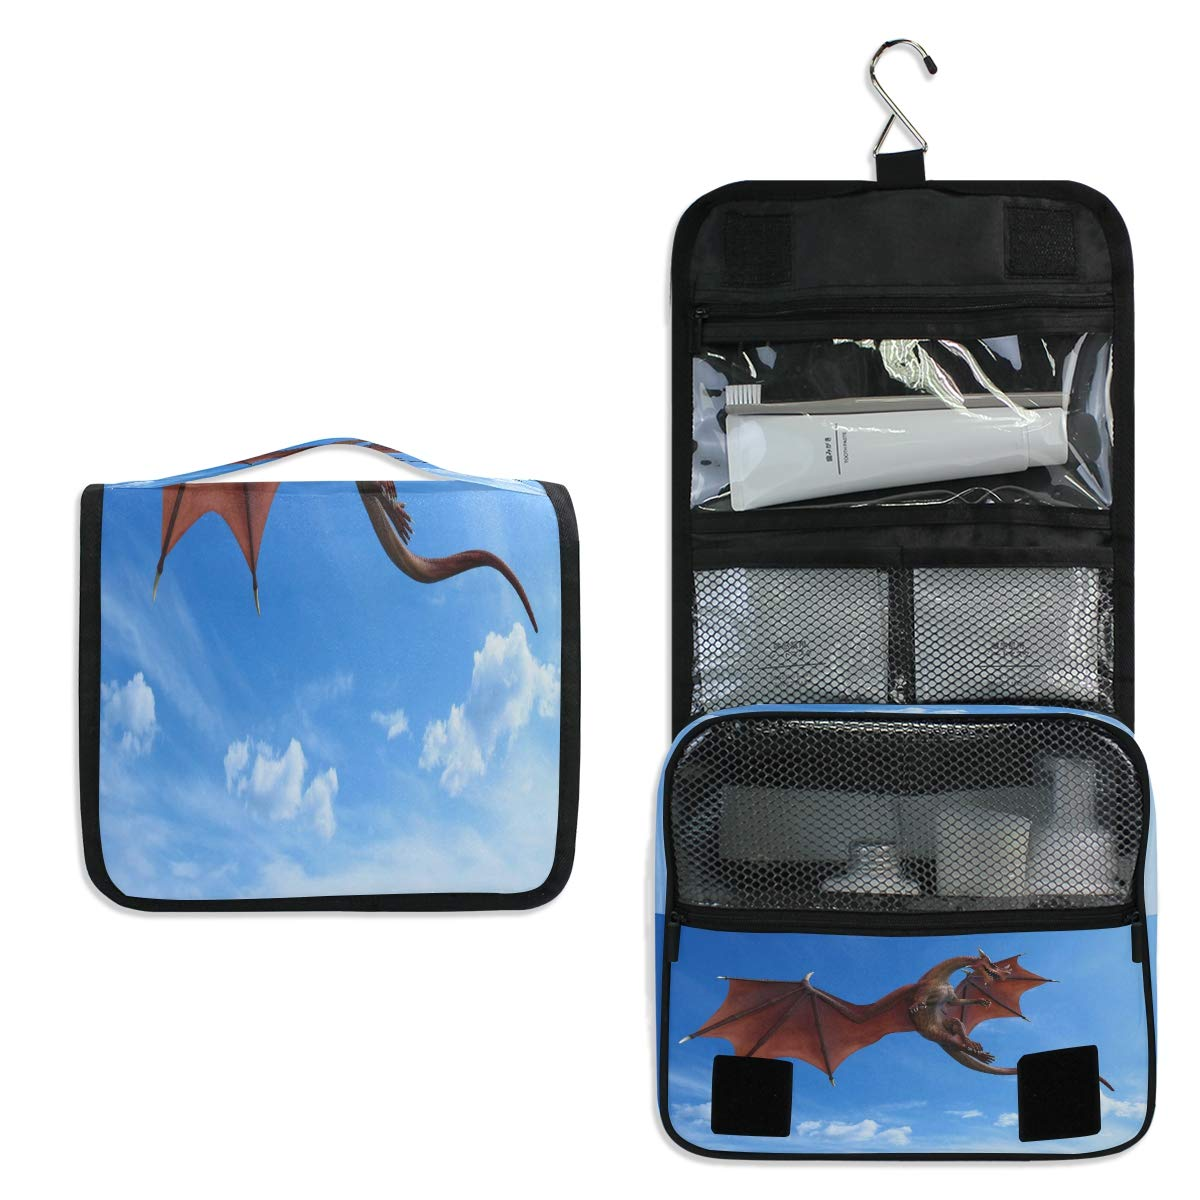 Hanging Toiletry Bag, Blue Sky Red Dragon War Waterproof Quilted Wash Gargle Bag Portable Travel Bathroom Shower Bags Deluxe Large Makeup Brush Case Capacity Pouch for Men and Woman